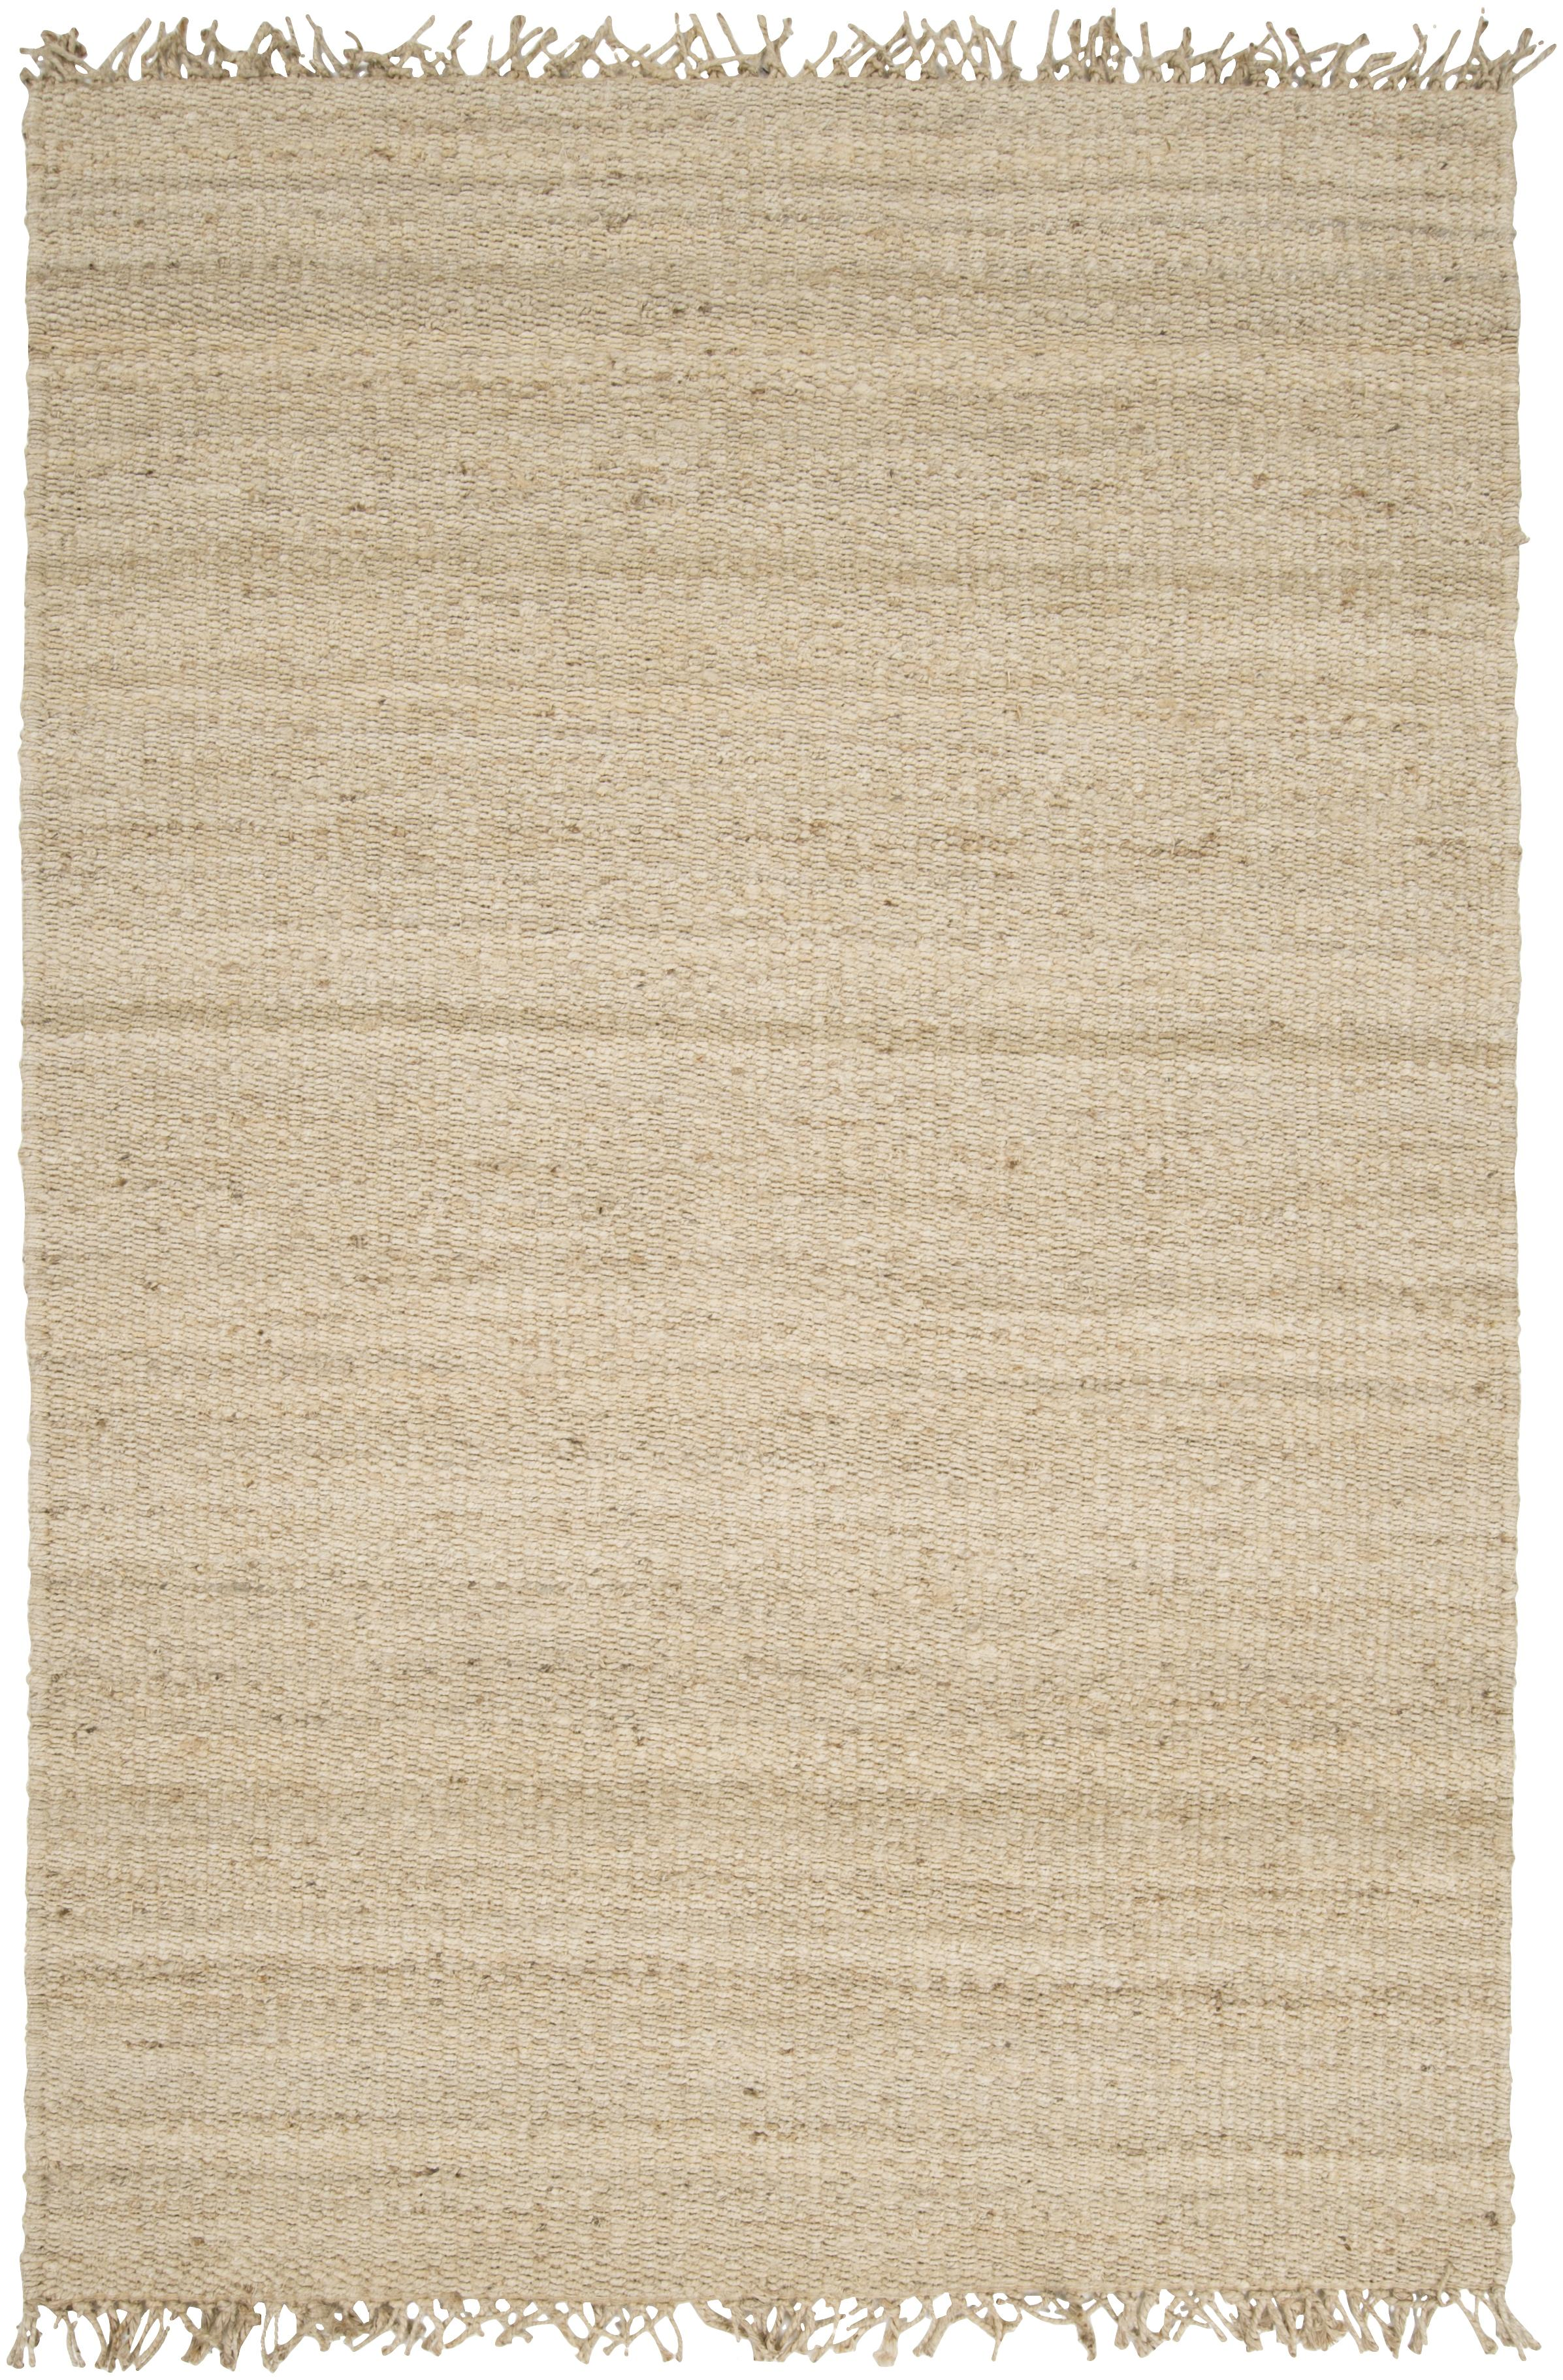 """Jute Bleached 10' x 13'6"""" by Ruby-Gordon Accents at Ruby Gordon Home"""